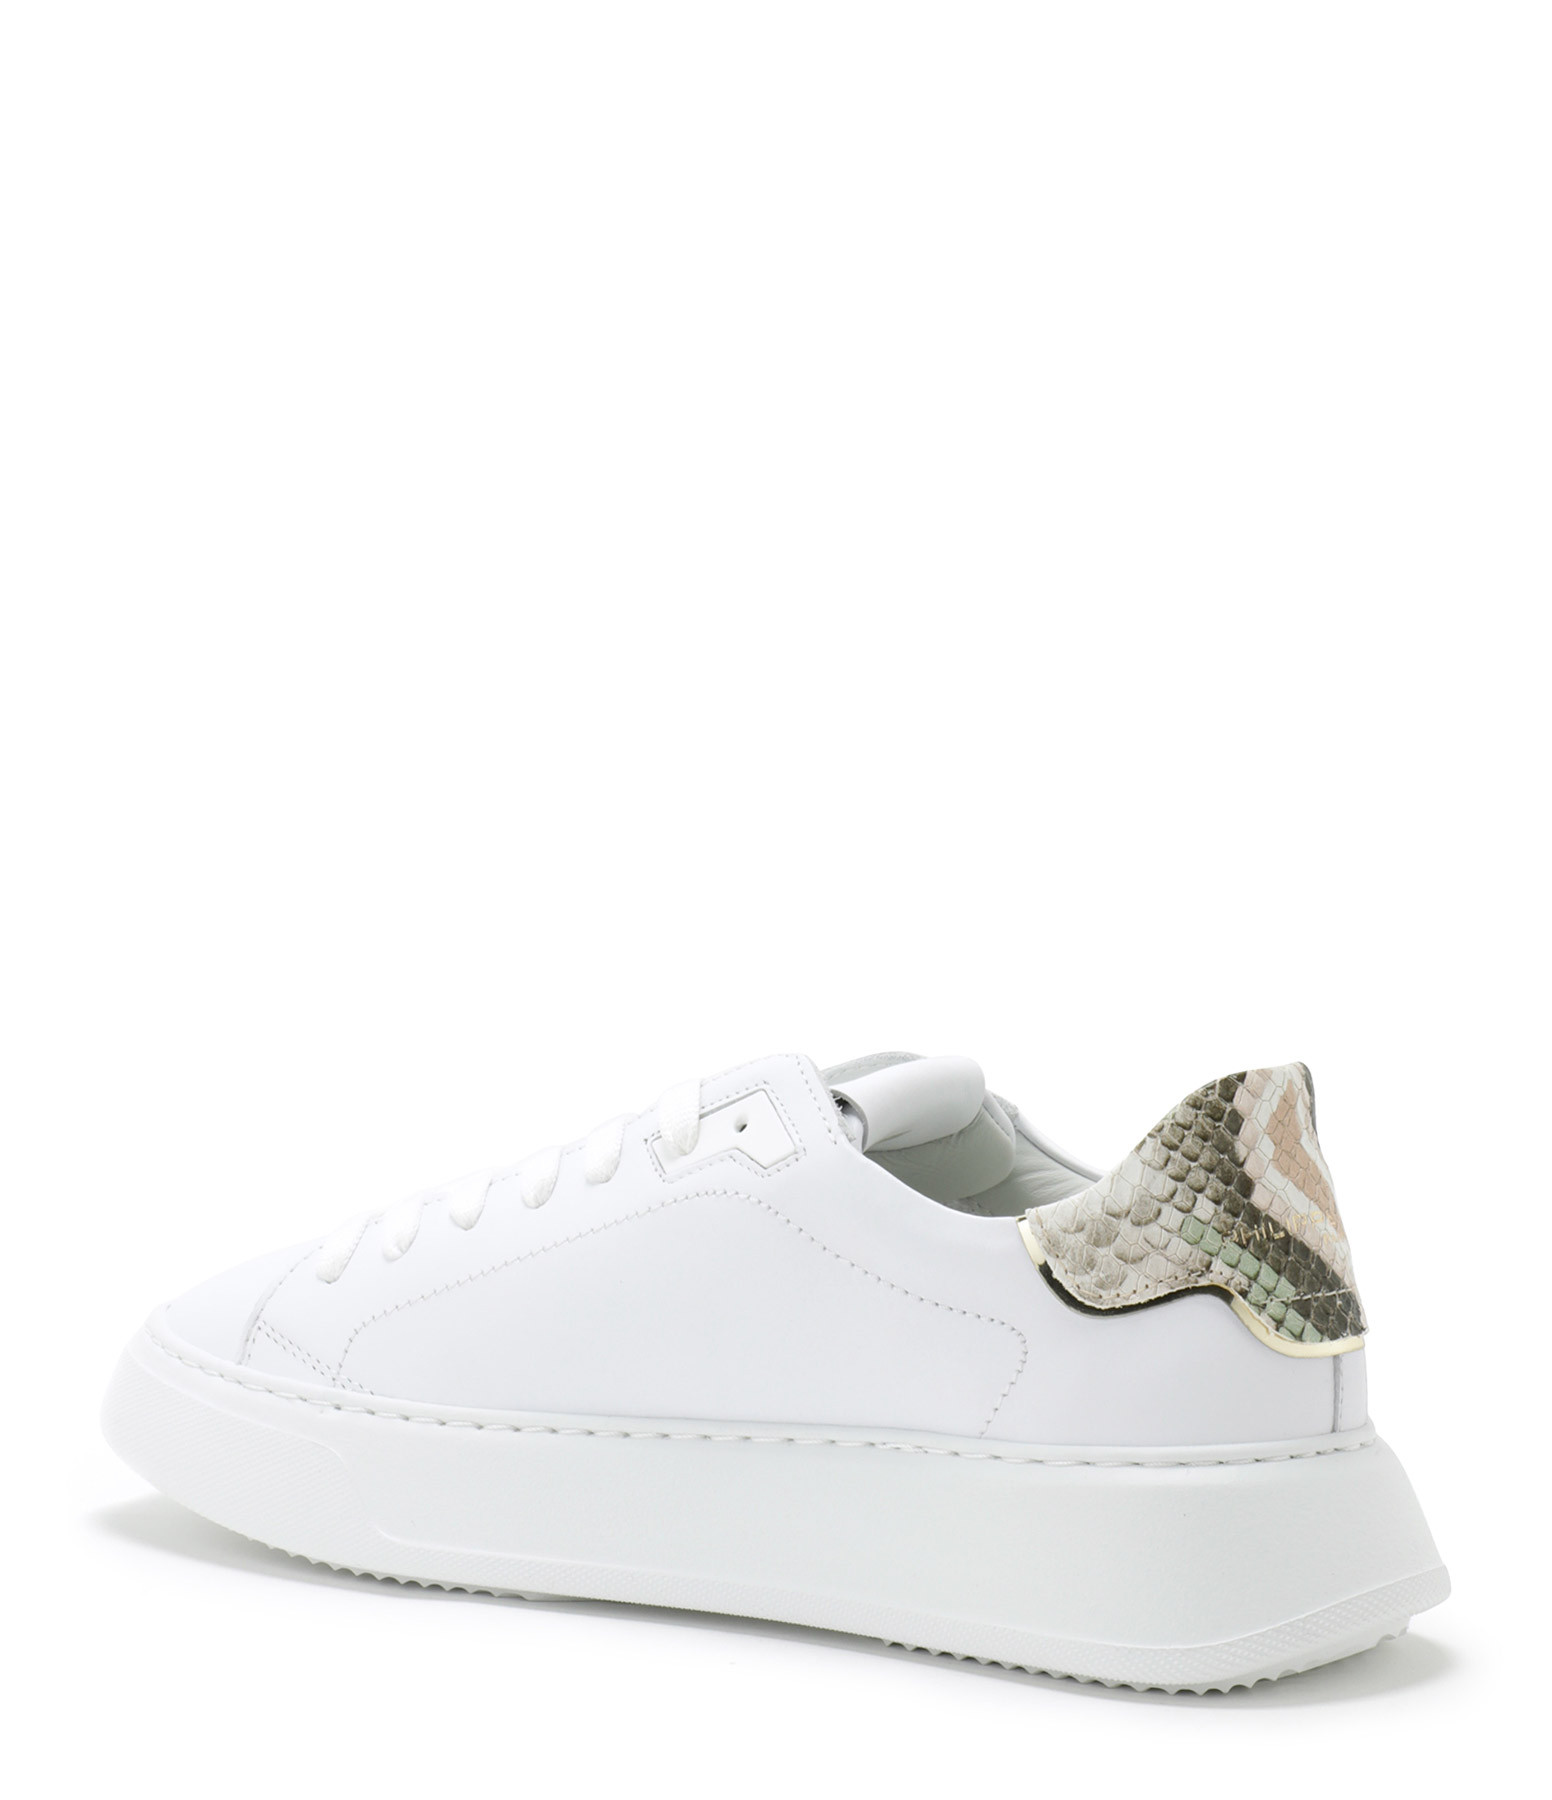 PHILIPPE MODEL - Baskets Temple Low Cuir Blanc Vert